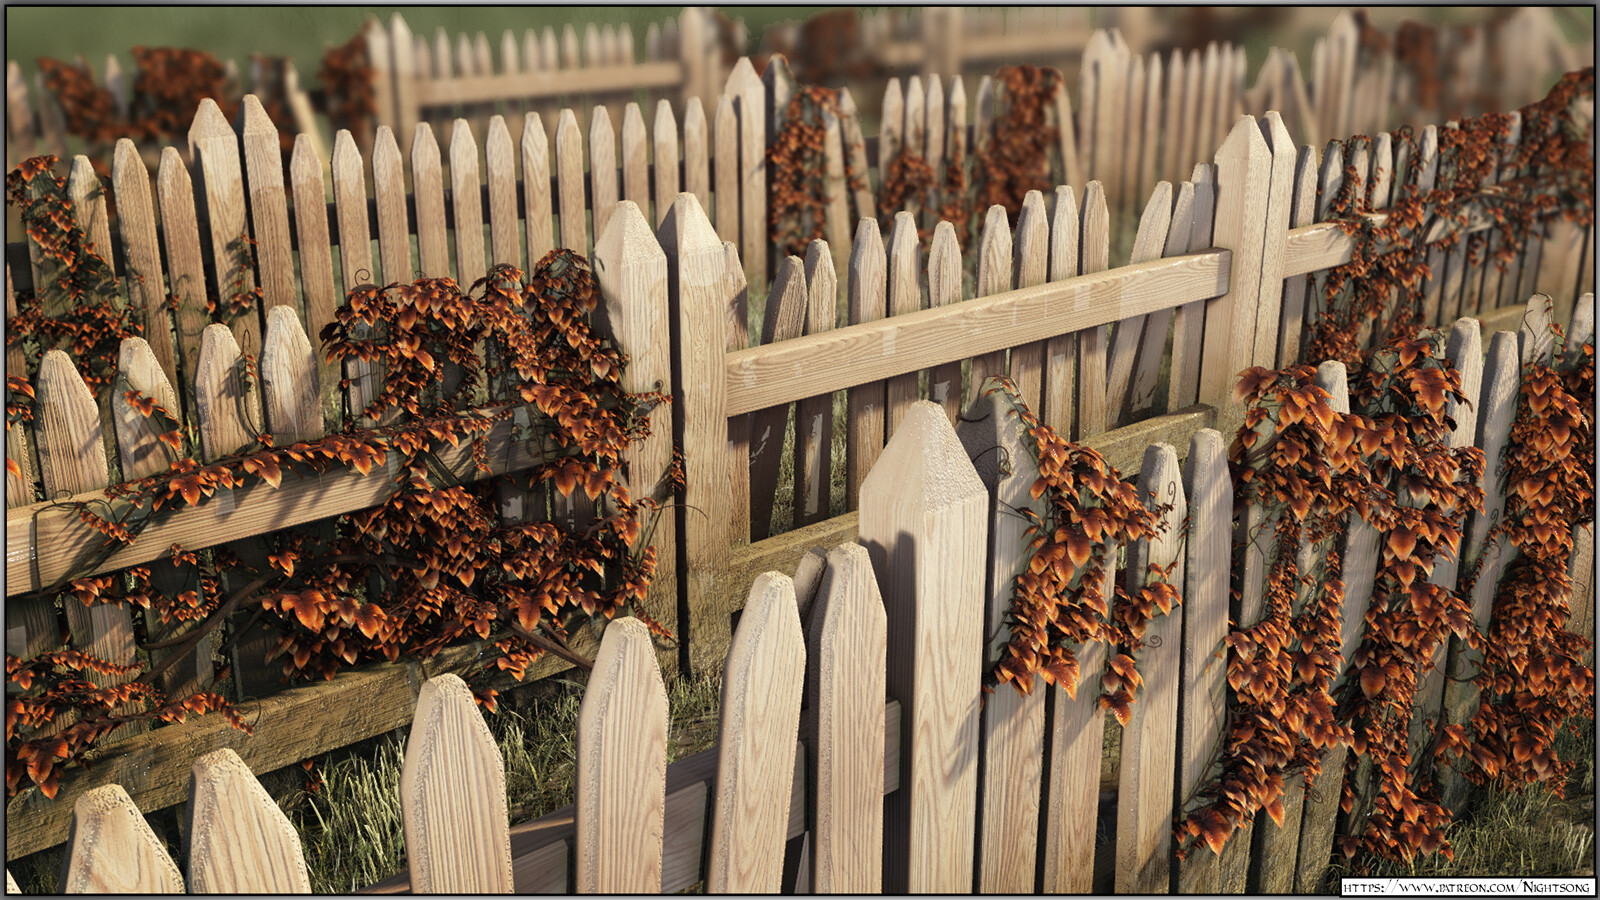 Broken Picket Fence with Vines